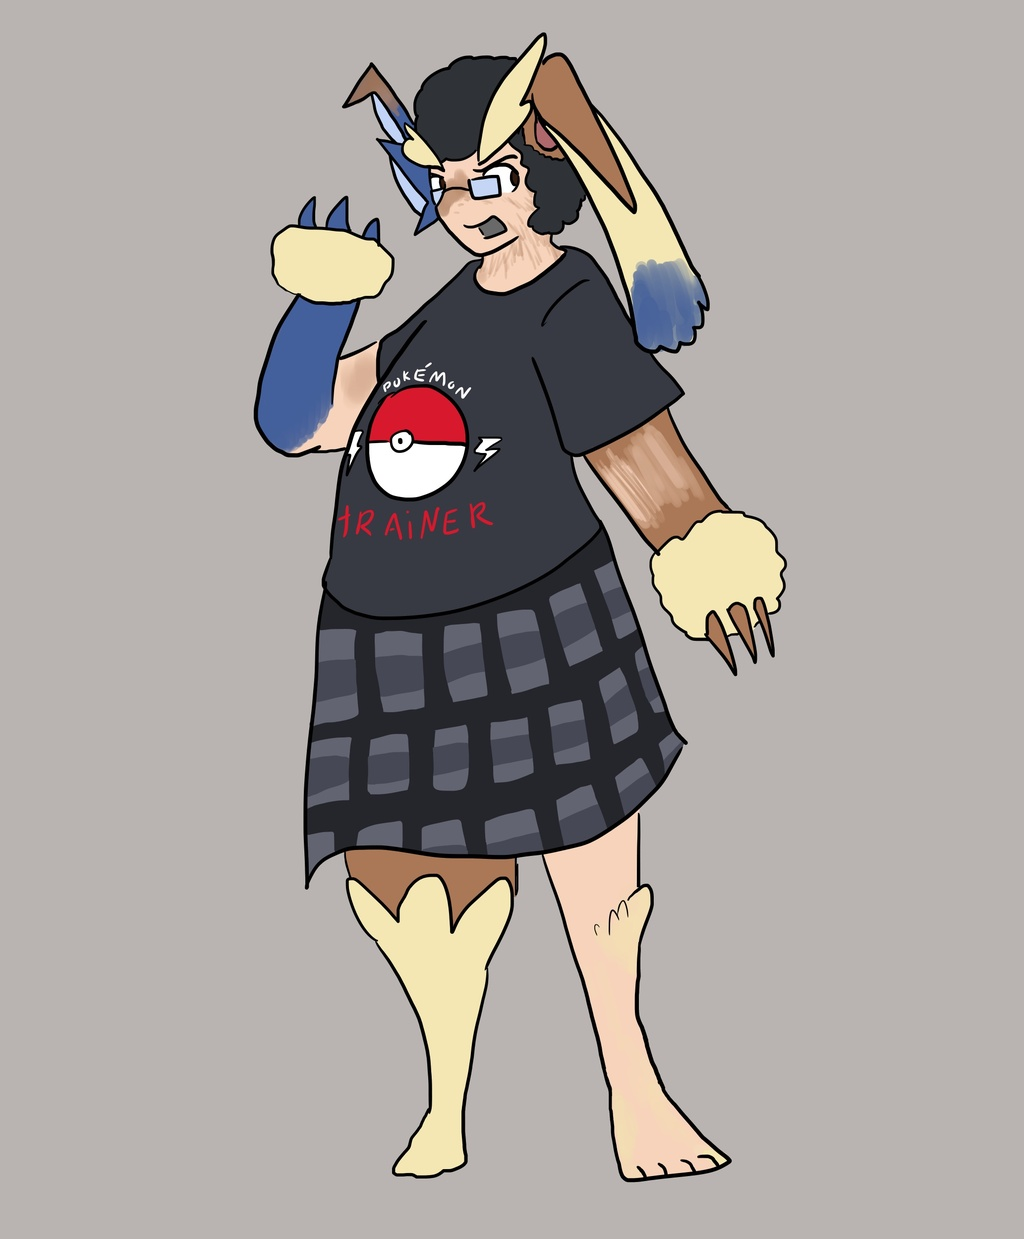 Most recent image: Poke-shift attempt #3: Lopunny #428